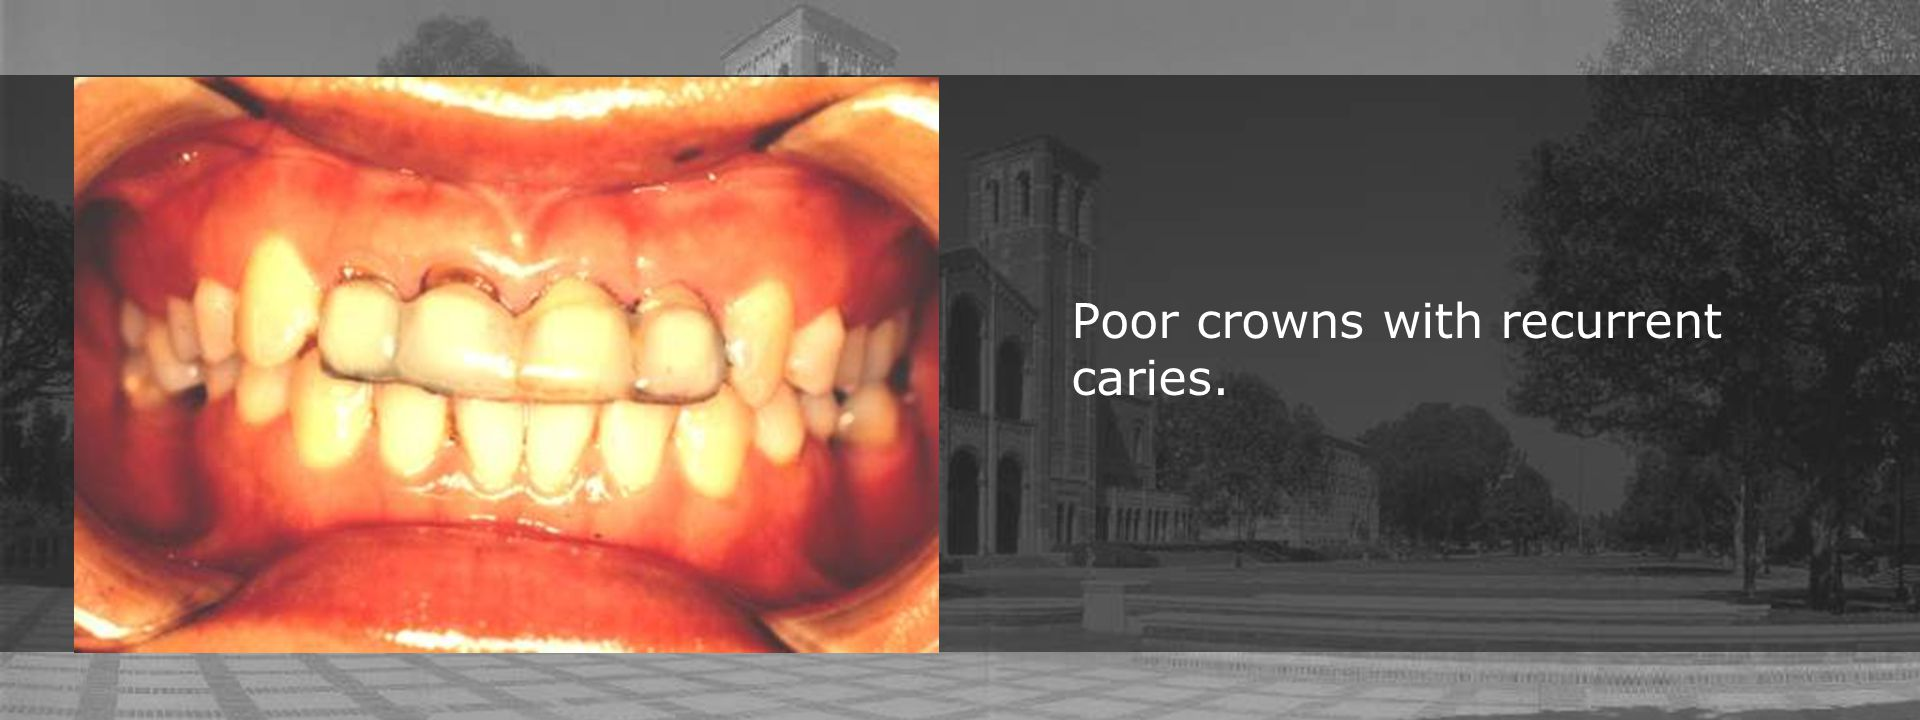 Poor crowns with recurrent caries.